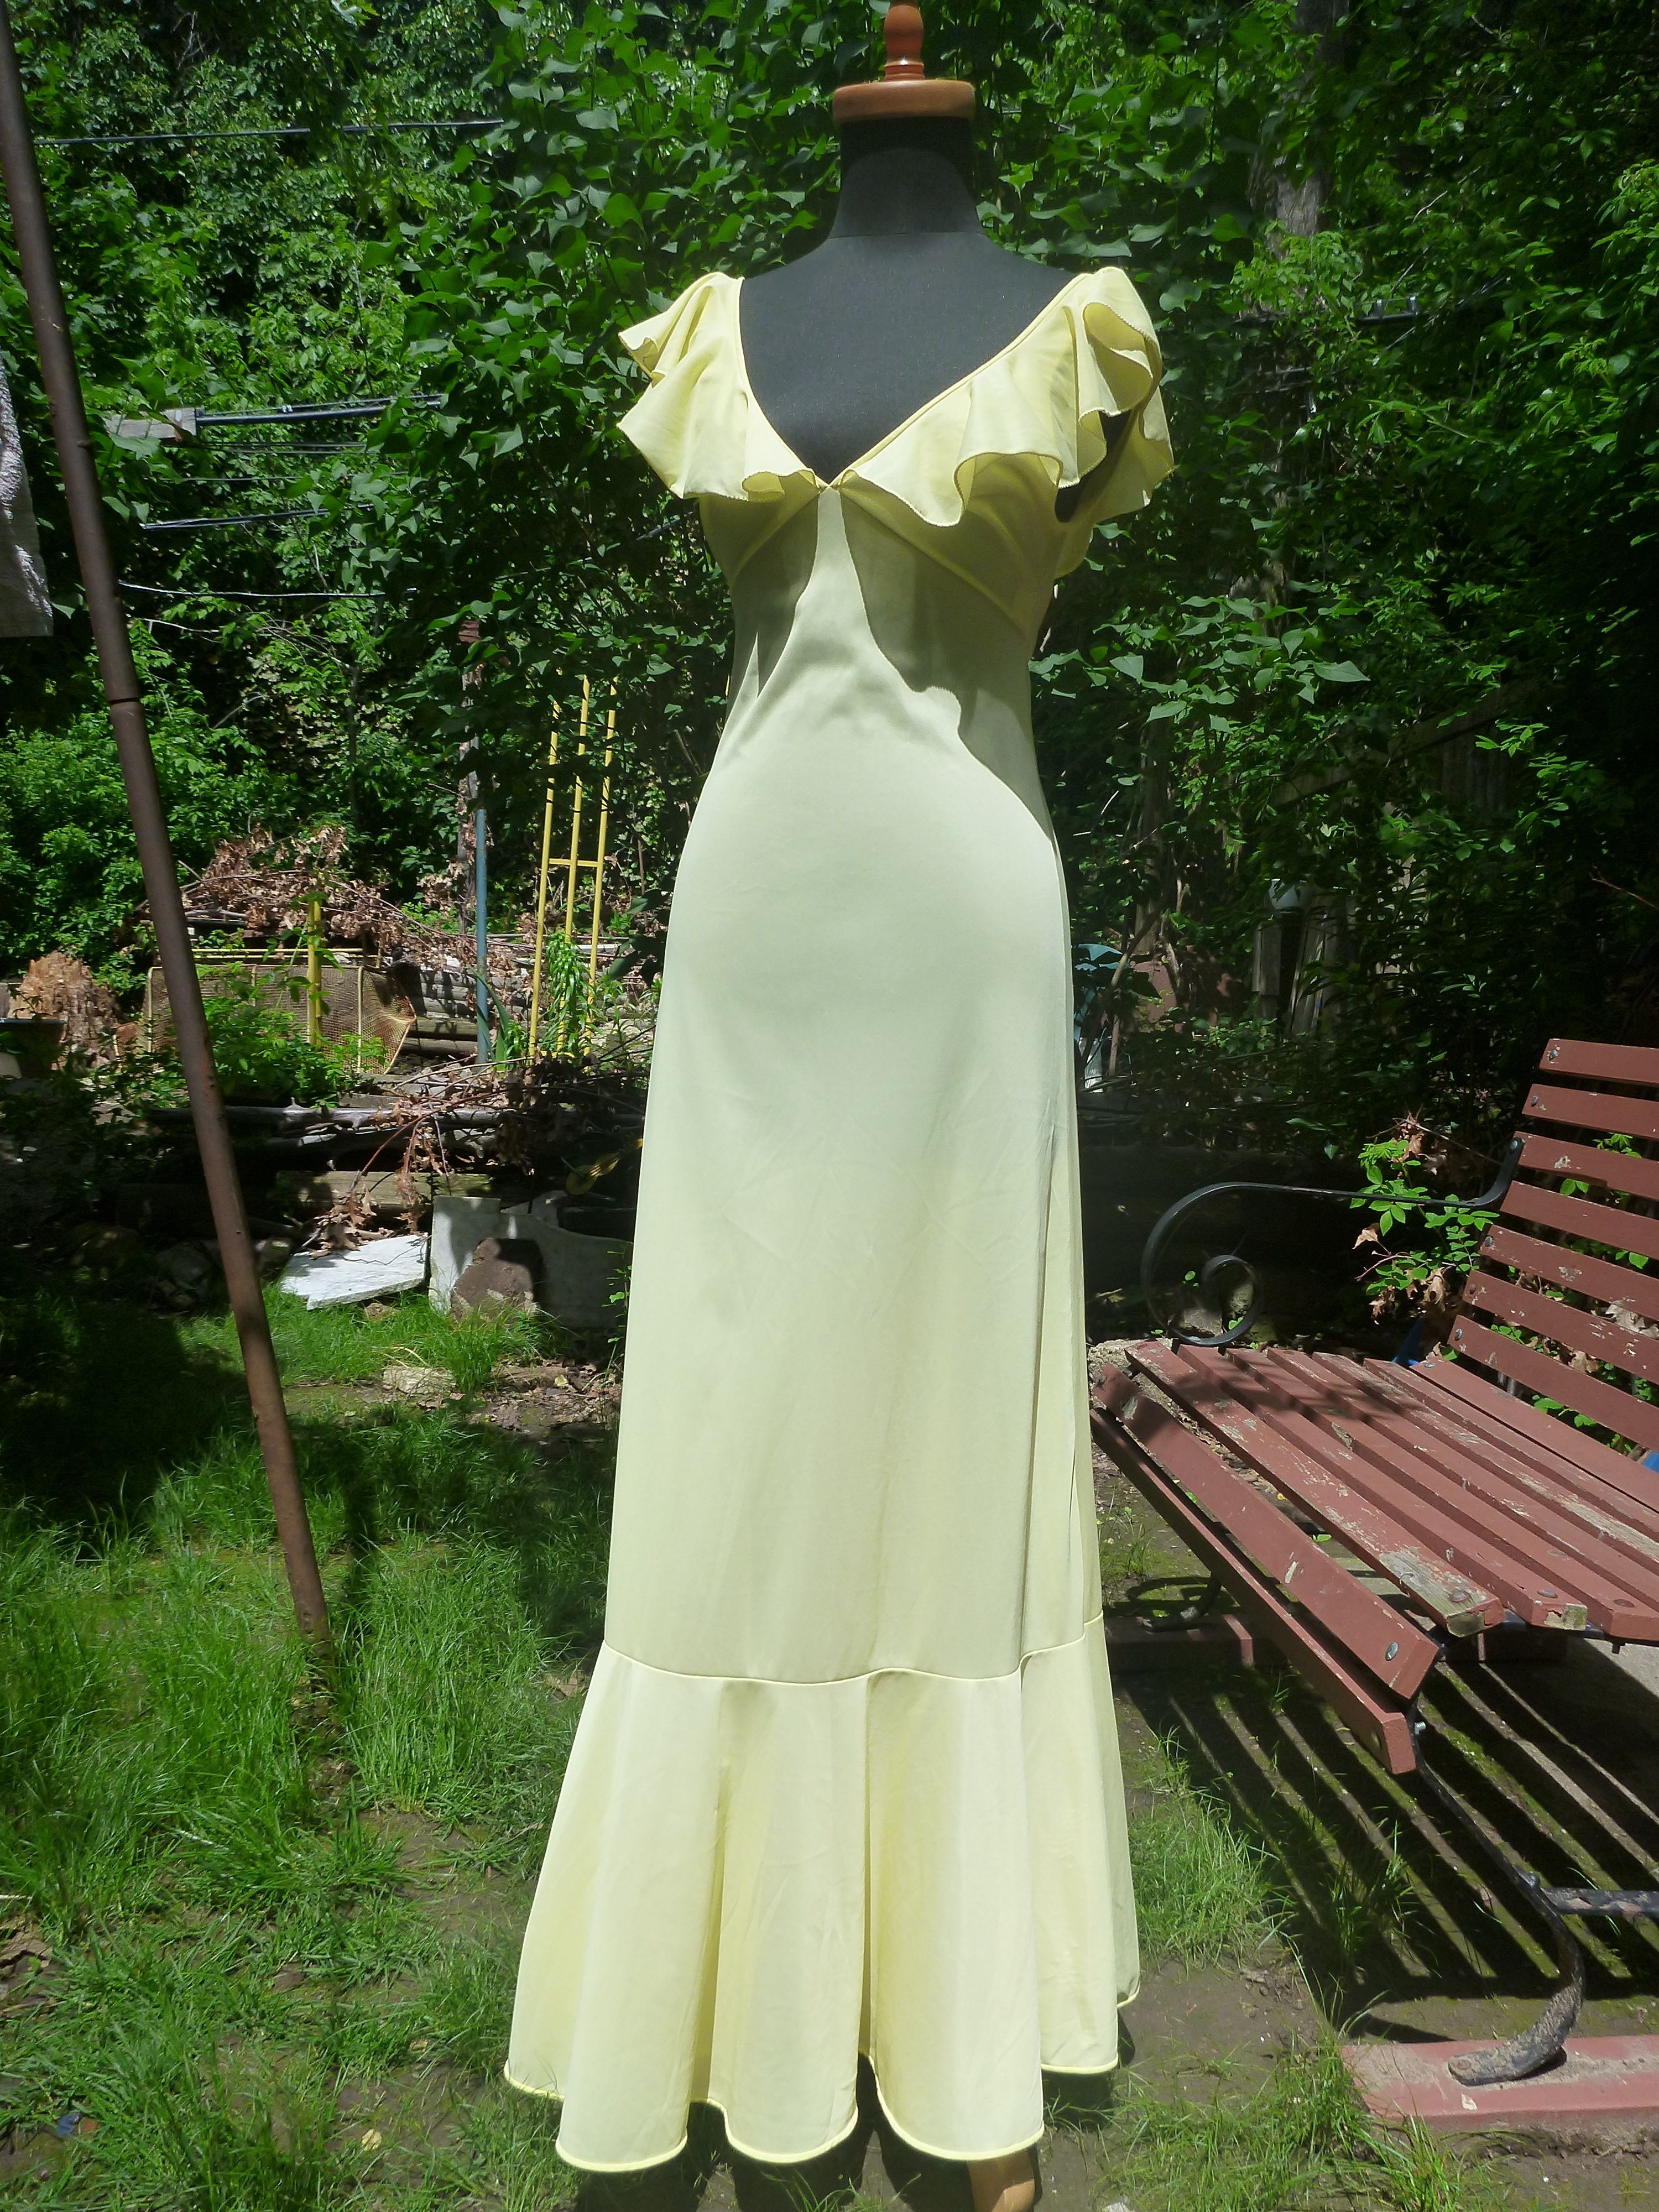 Fluttery, buttery, heavenly! Seventies Vassarette gown. $17 on Etsy: https://www.etsy.com/listing/195088692/70s-vintage-pale-yellow-long-nylon?ref=shop_home_active_9